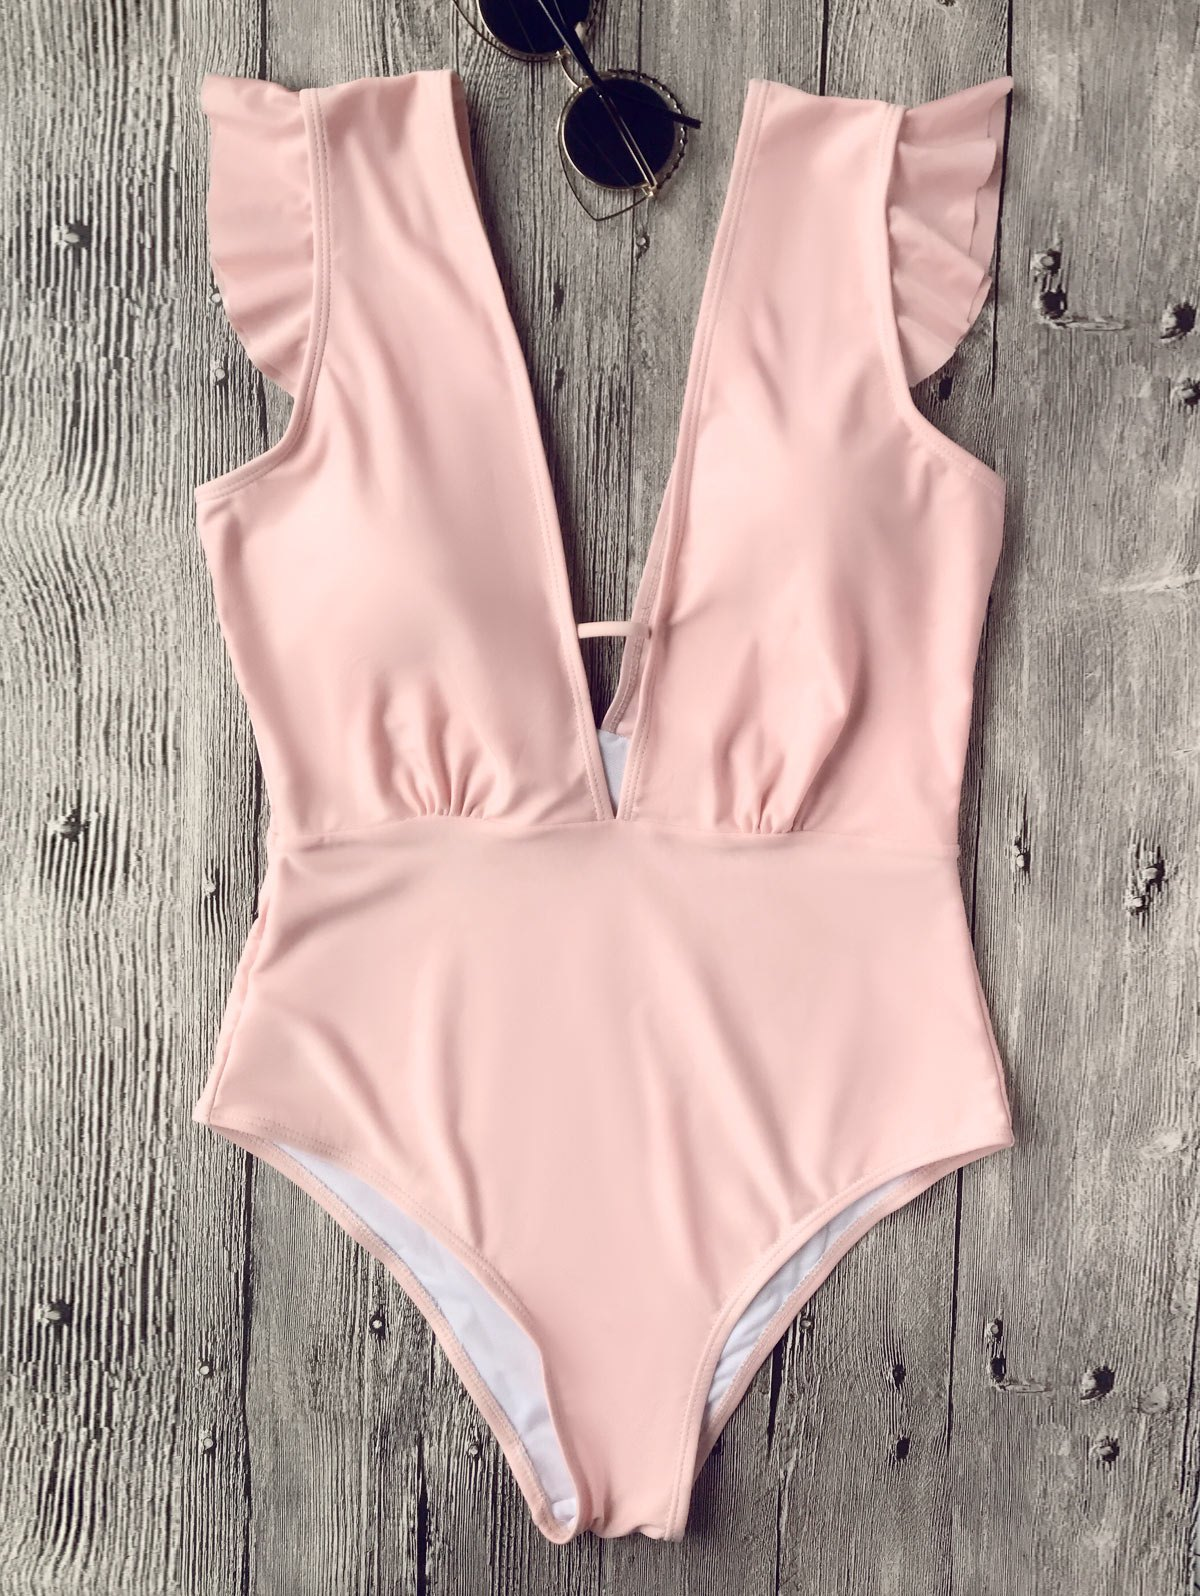 Ruffles Plunging Neck One Piece Swimsuit - Pink M